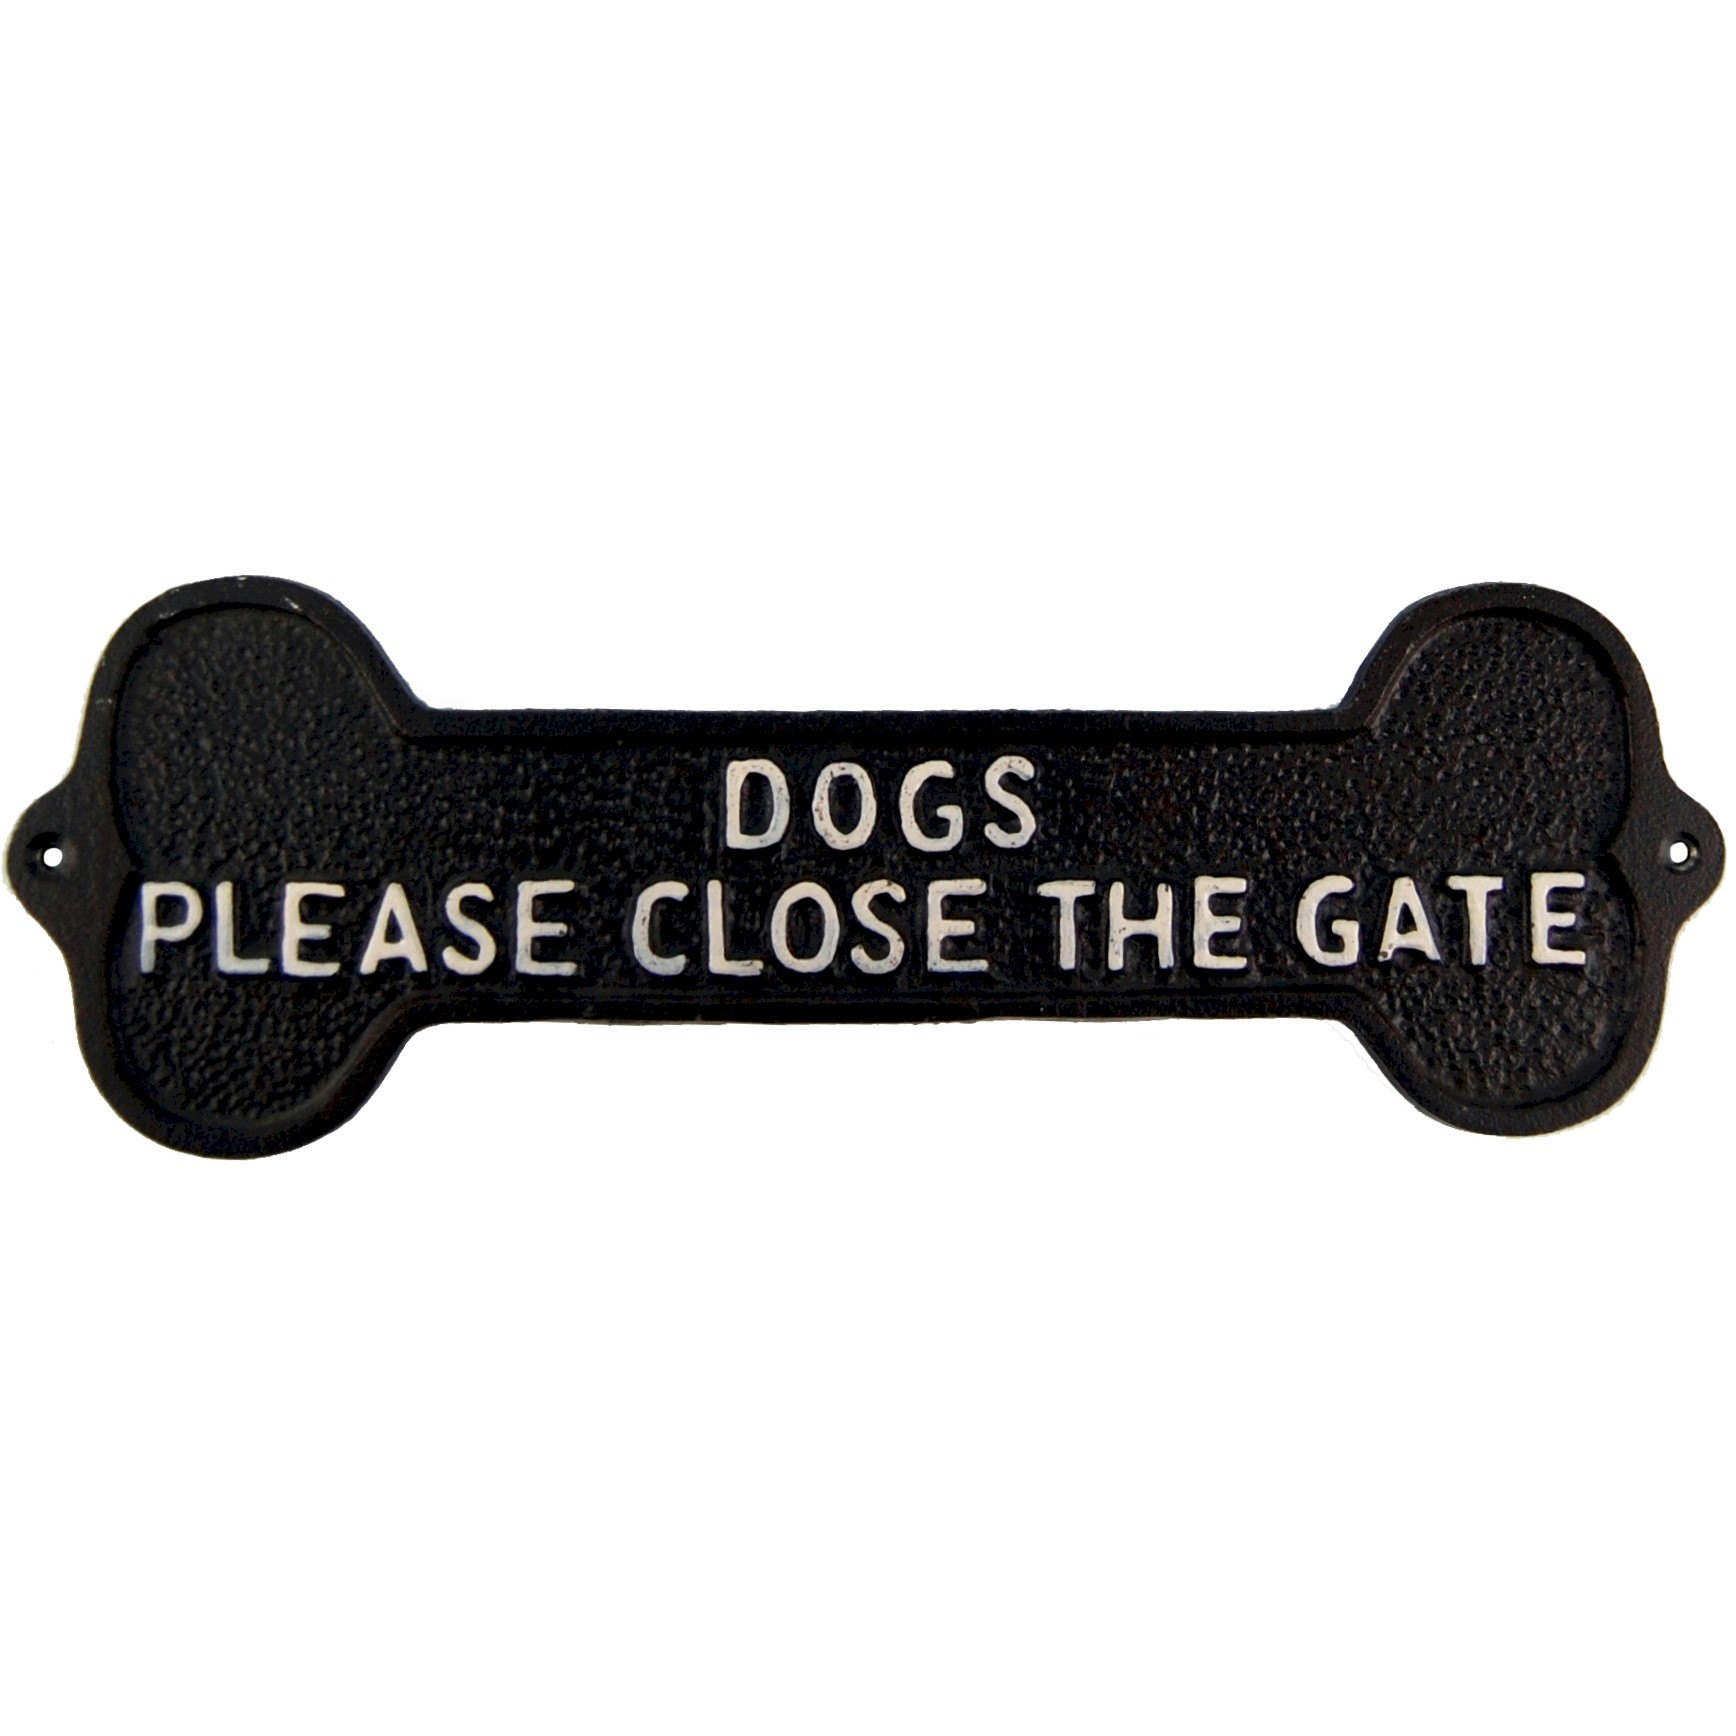 SIGN - DOGS CLOSE THE GATE